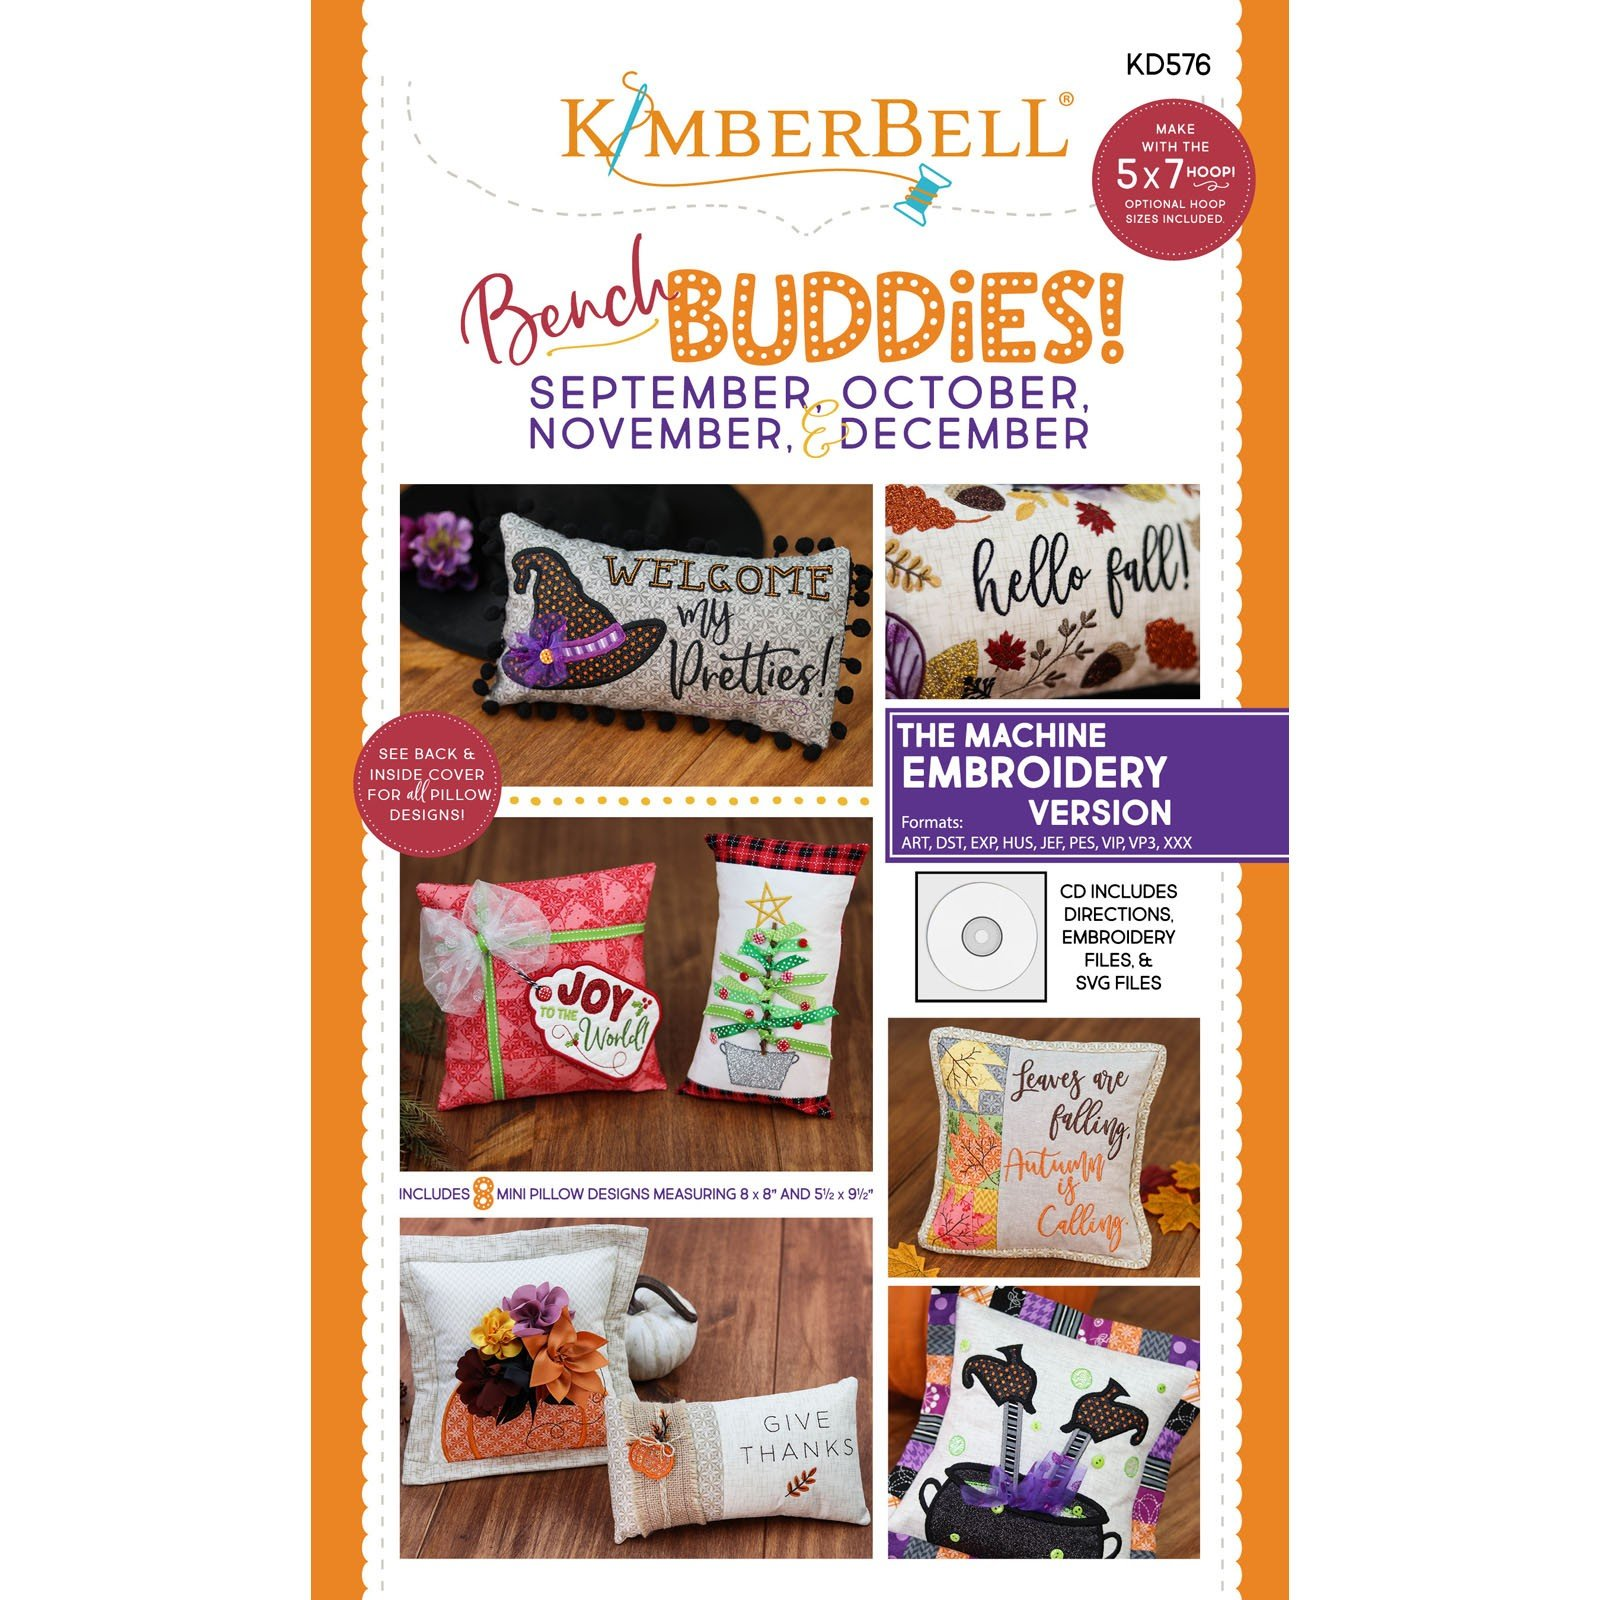 Bench Buddies: September ~ December (Embroidery CD) by Kimberbell